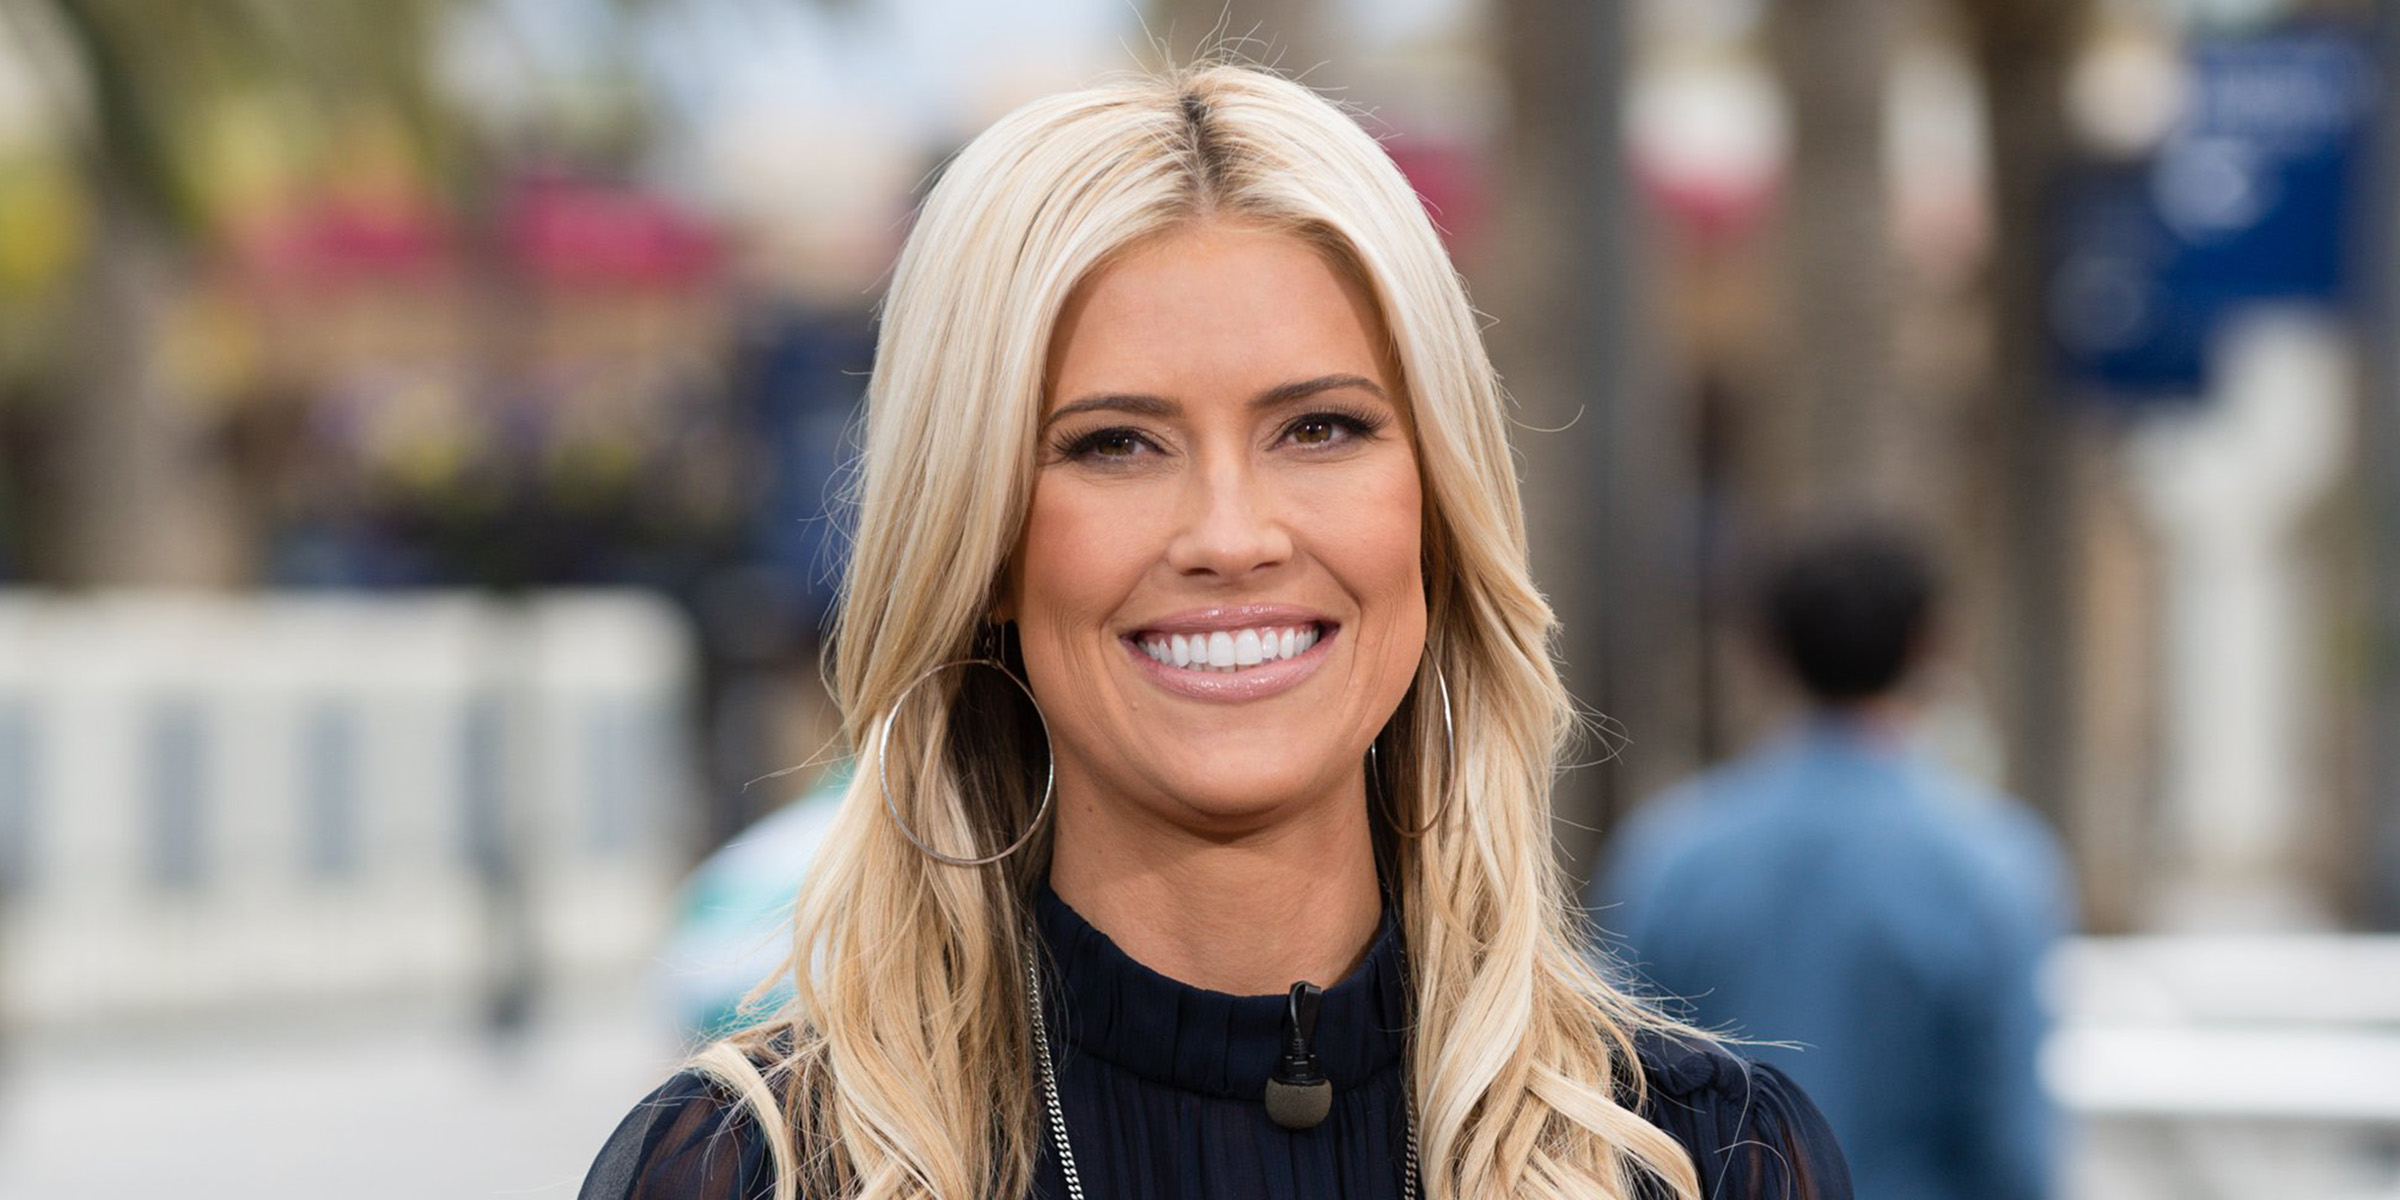 Louise Anstead Net Worth 2020, Bio, Relationship, and Career Updates